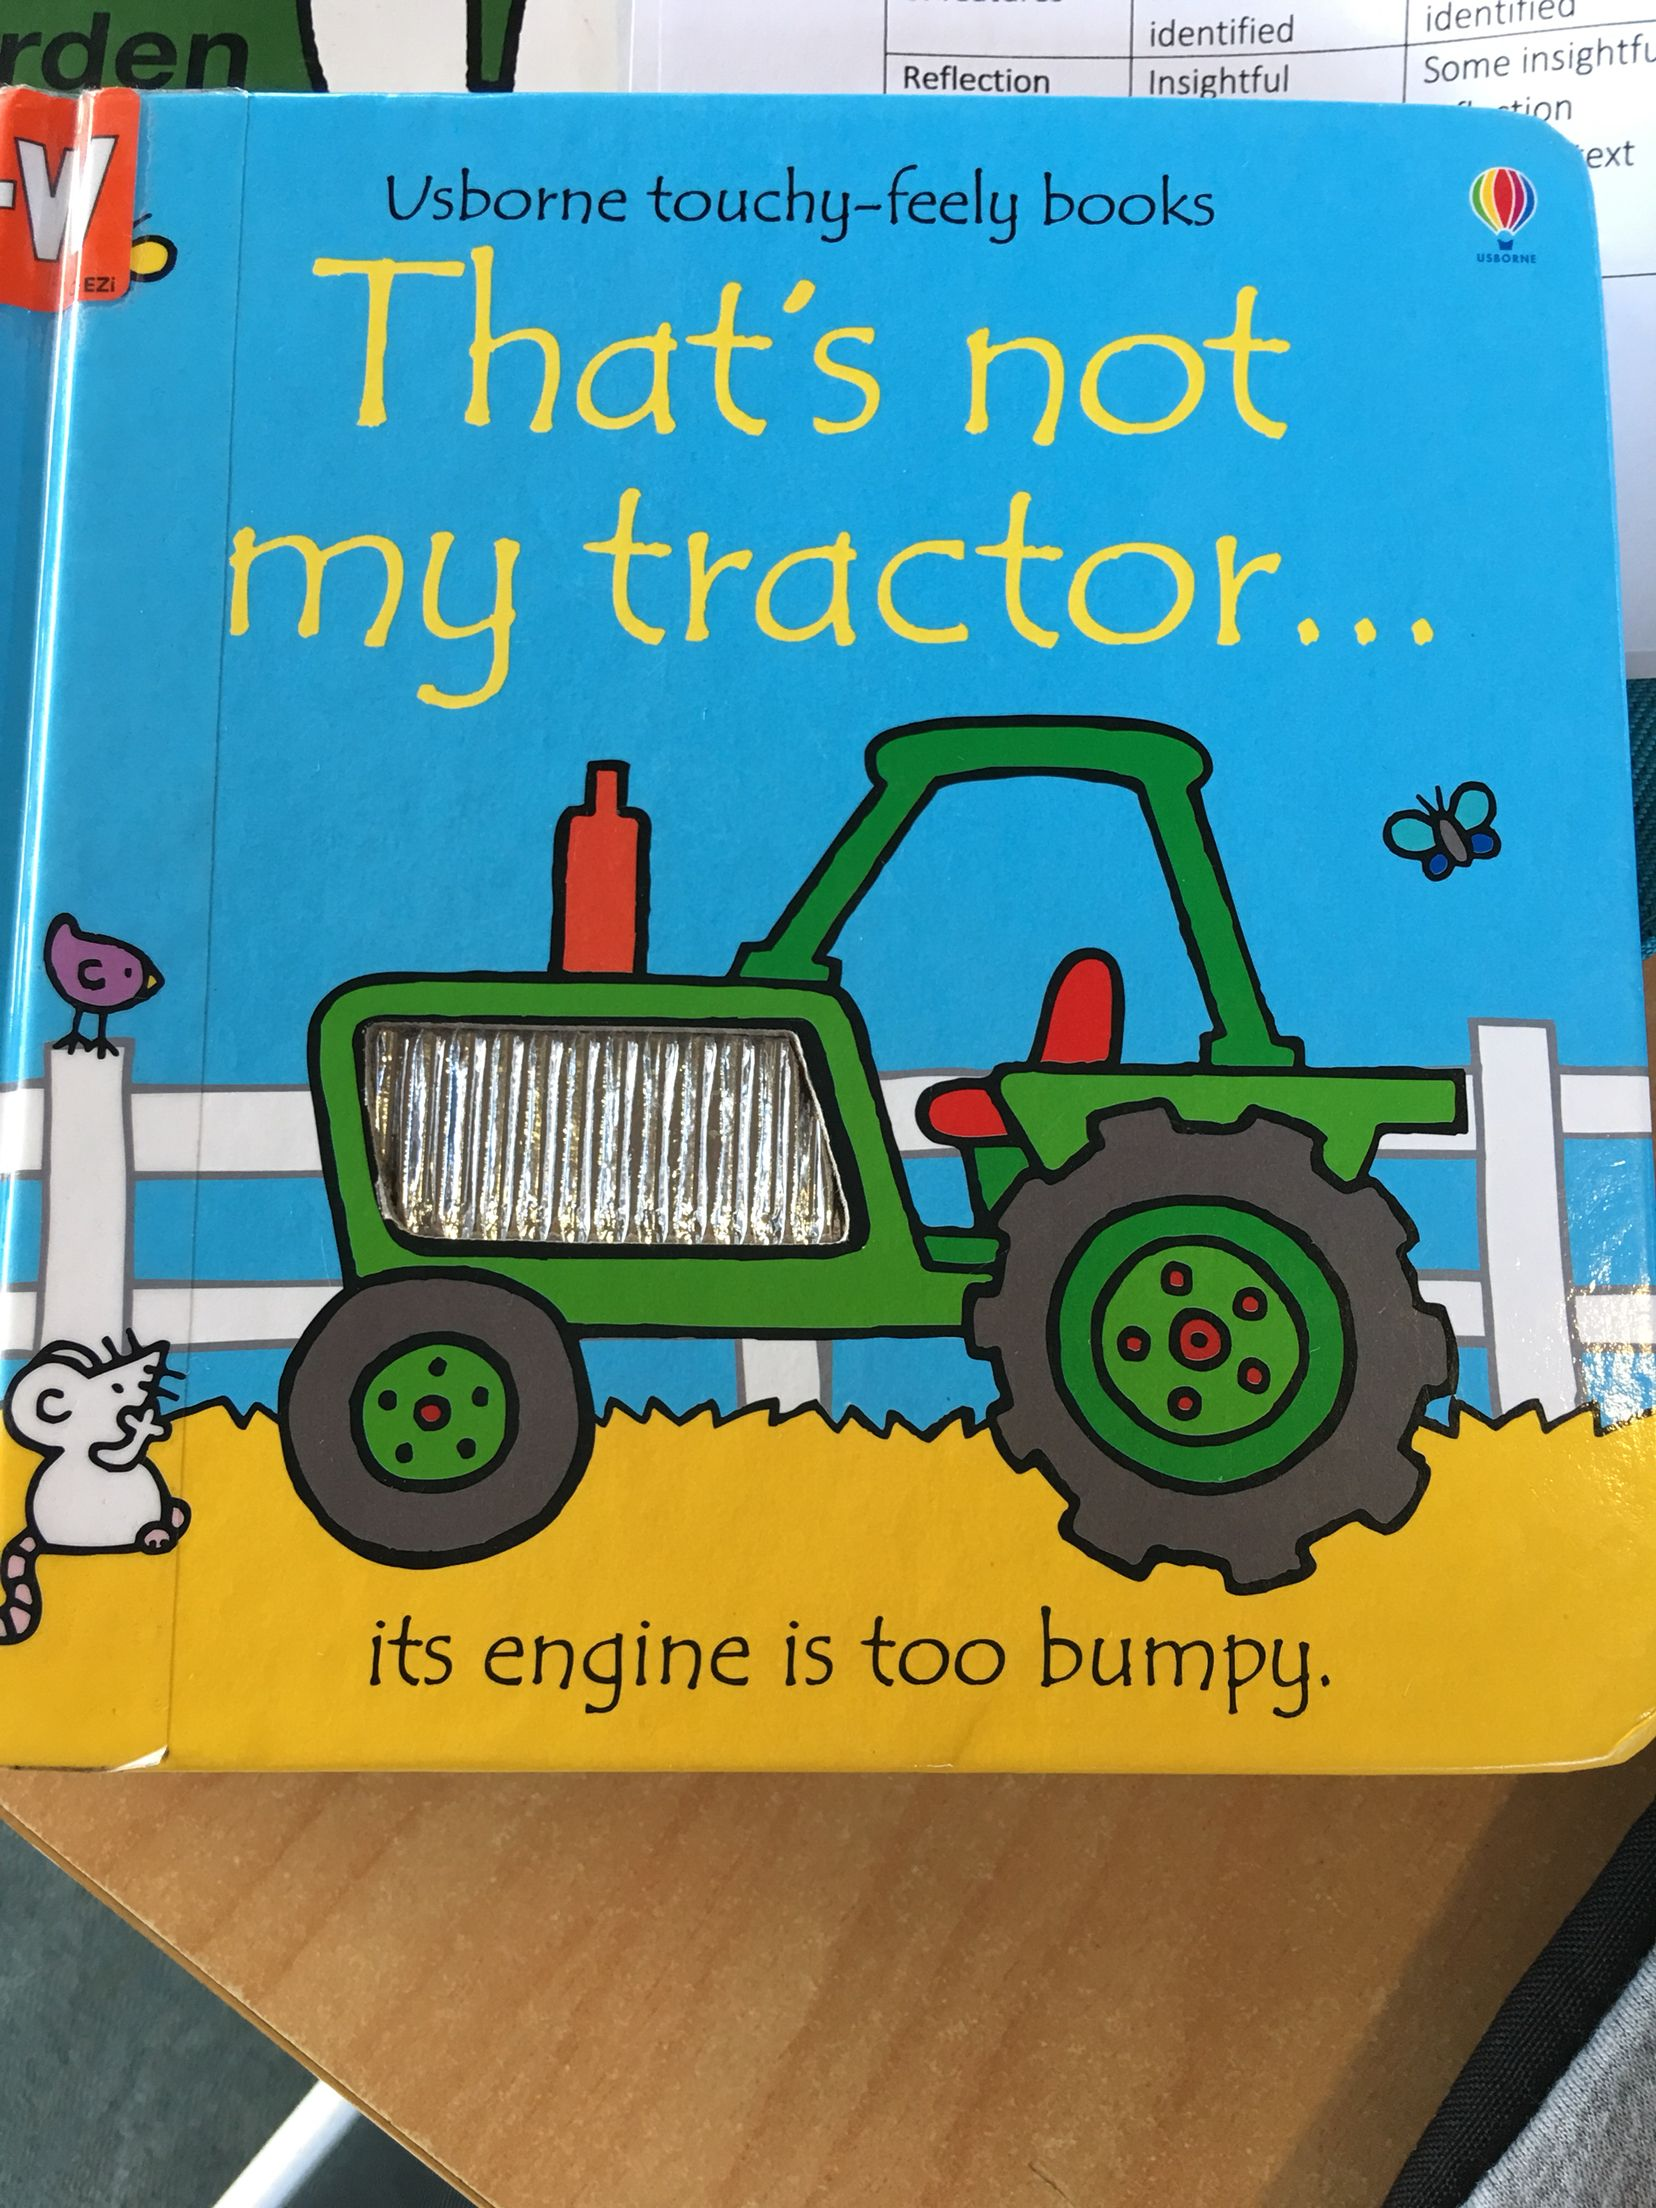 I Like This Children Book Because It Is A Touchy Feely